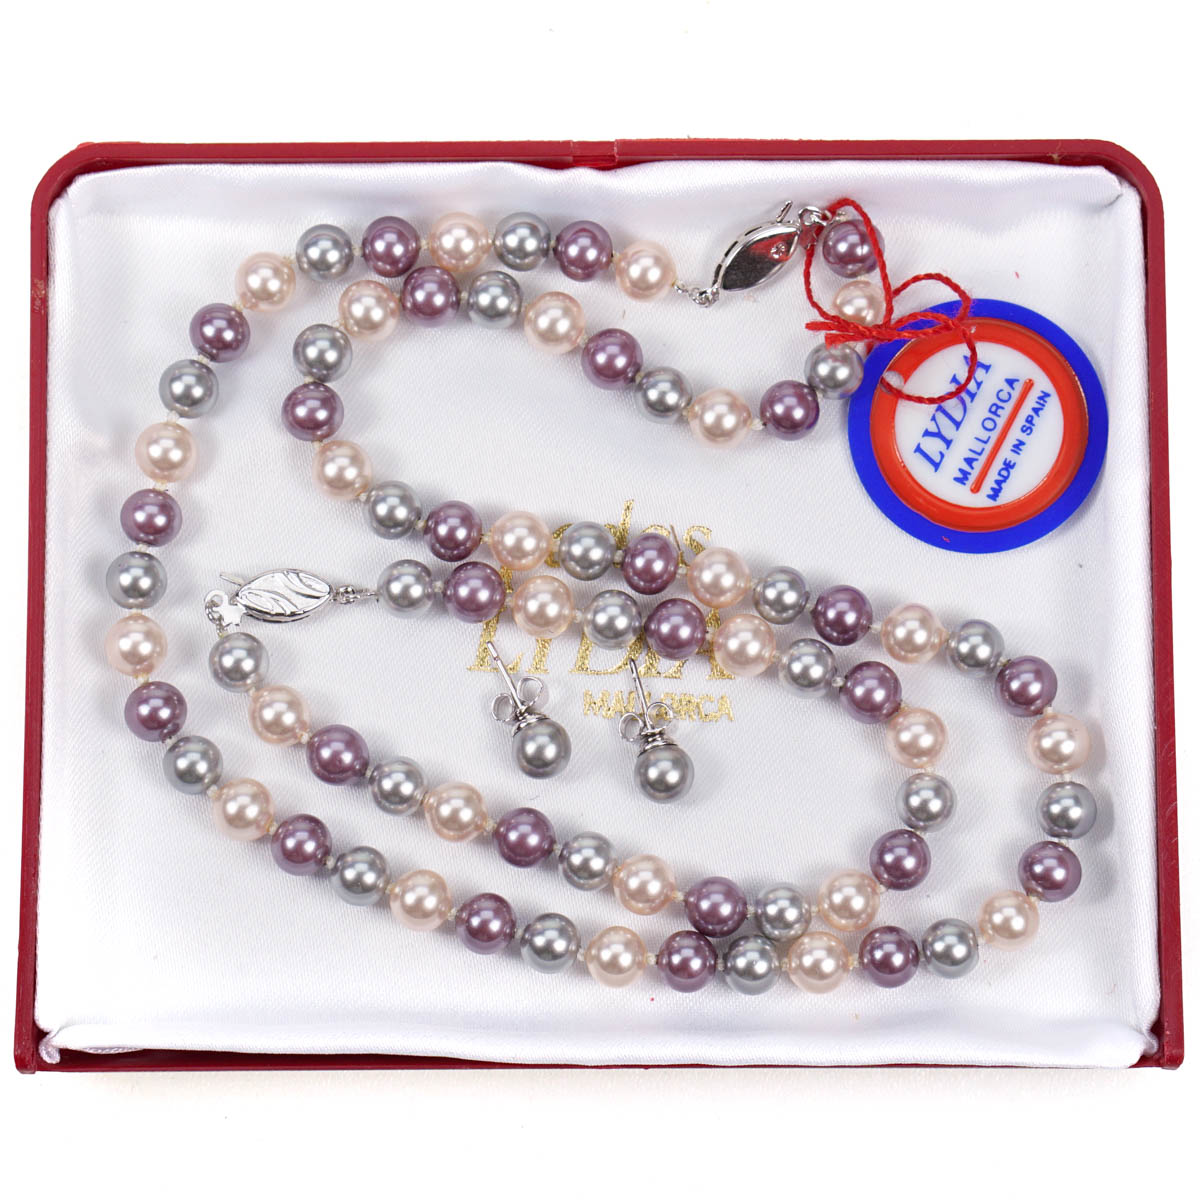 Mallorca Pearl Necklace: Perlas Lydia Mallorca Pearl Necklace Bracelet Earrings